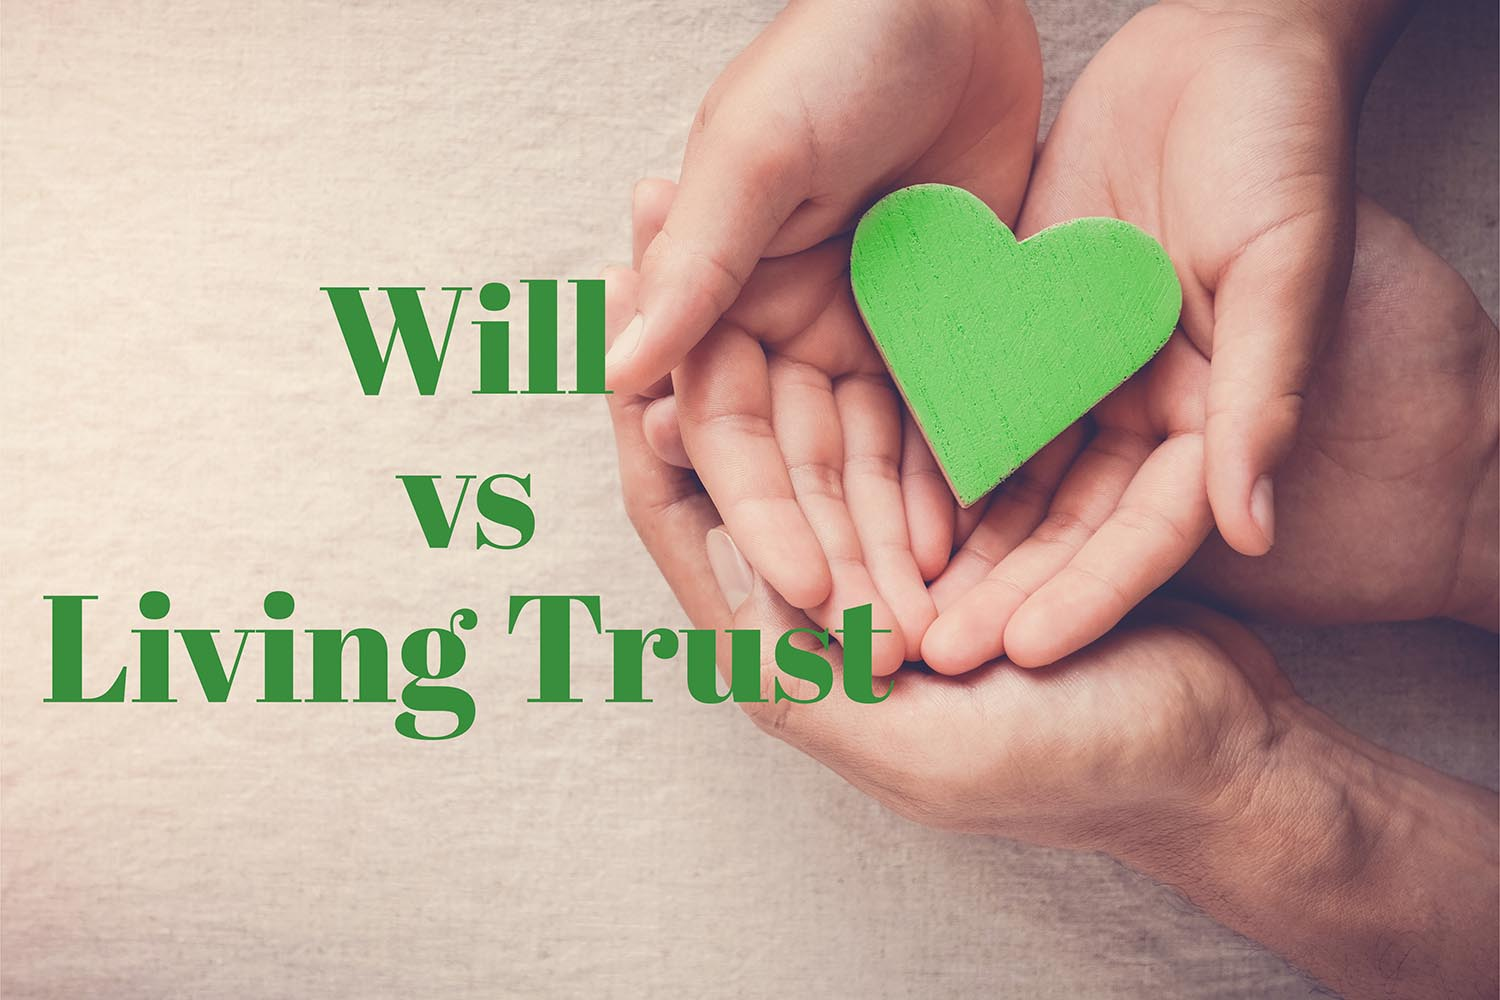 will vs living trust